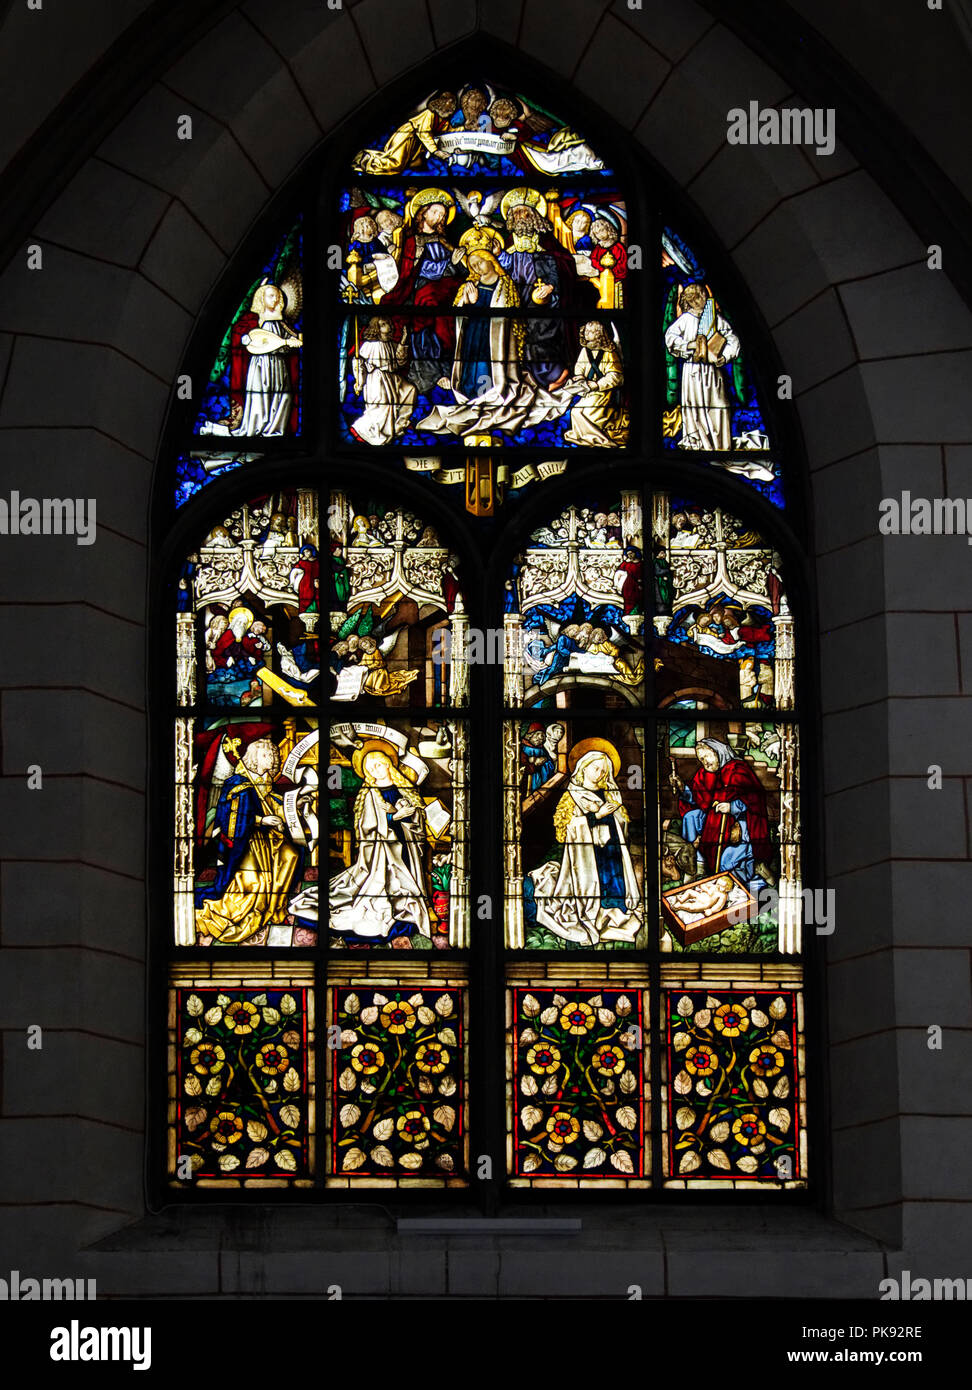 Medieval  stained glass window in Augsburg cCathedral, a romanesque basilica style Roman Catholic cathedral in Augsburg, Germany Stock Photo